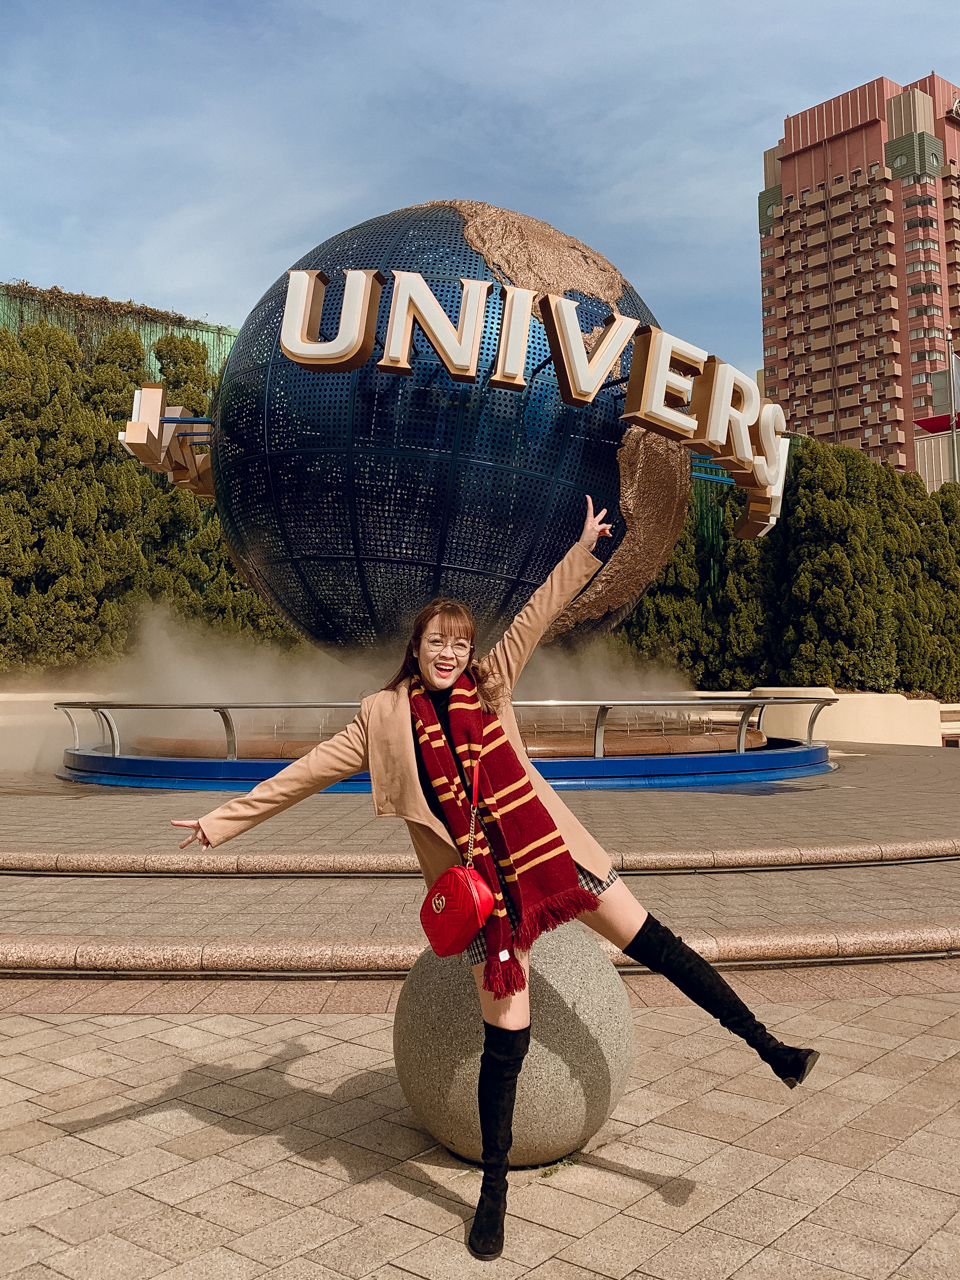 Osaka Feb'19: Universal Studios Japan Yet Again?!